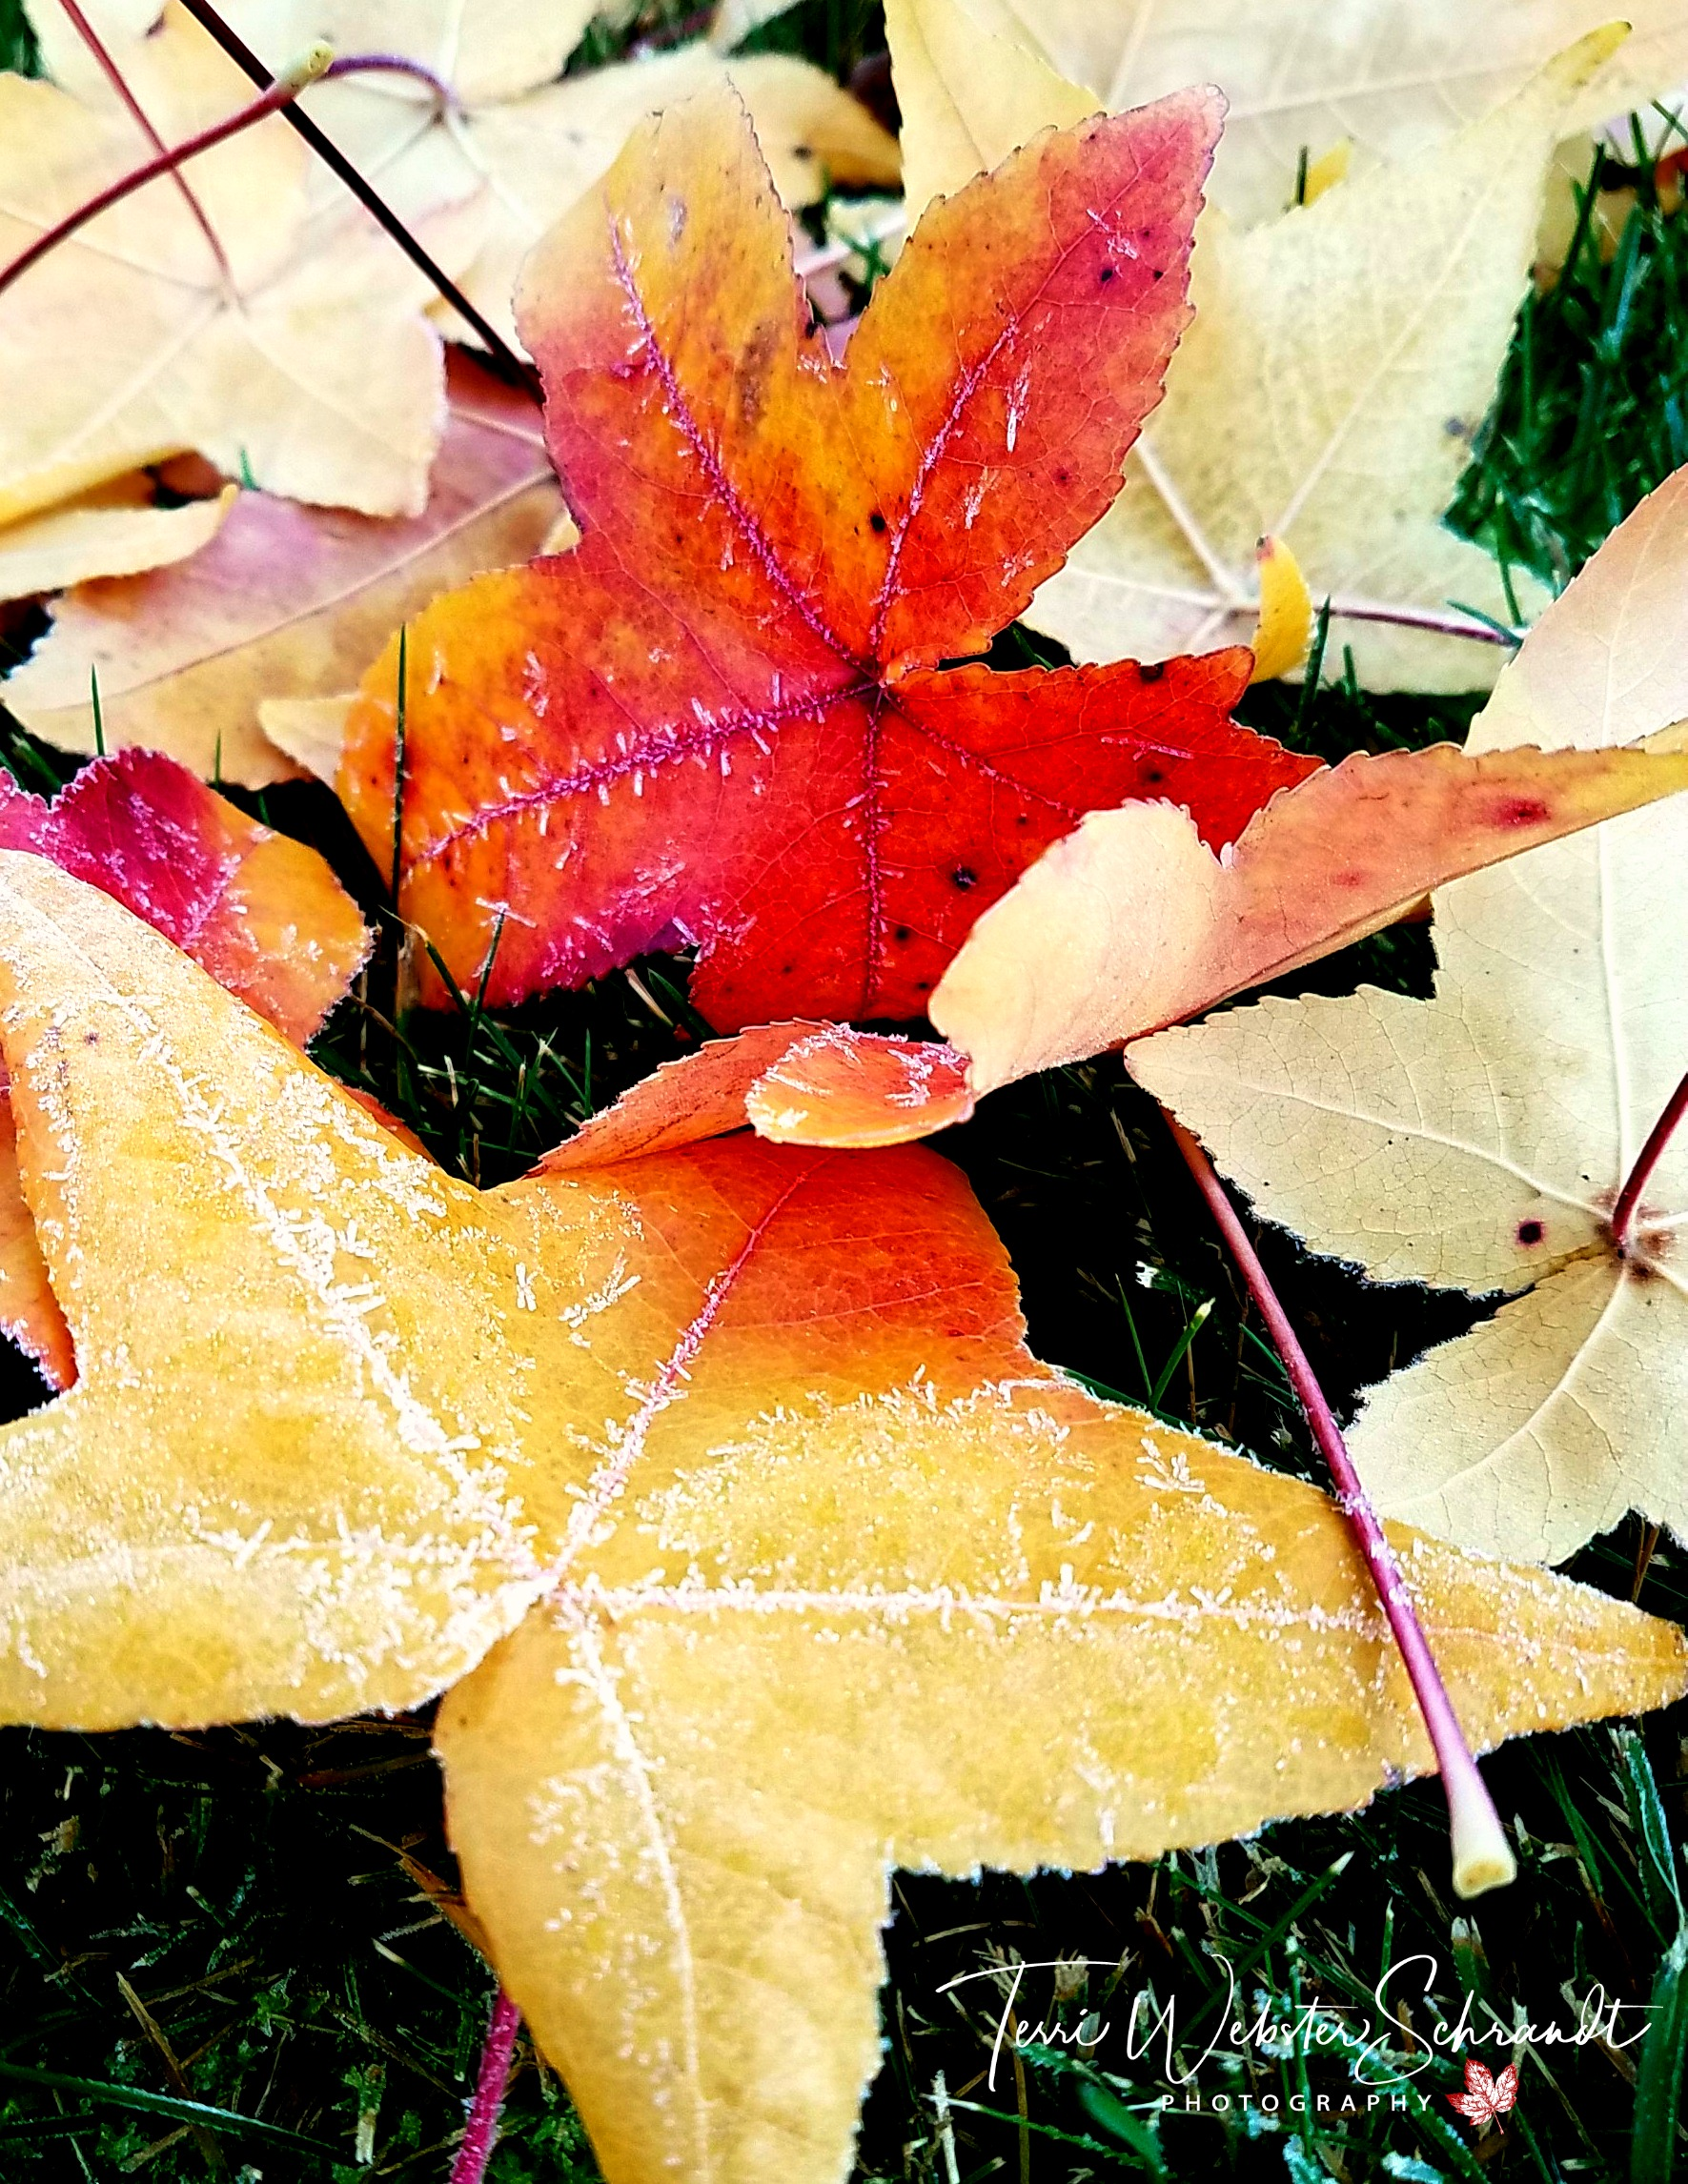 Fallen frosted leaves